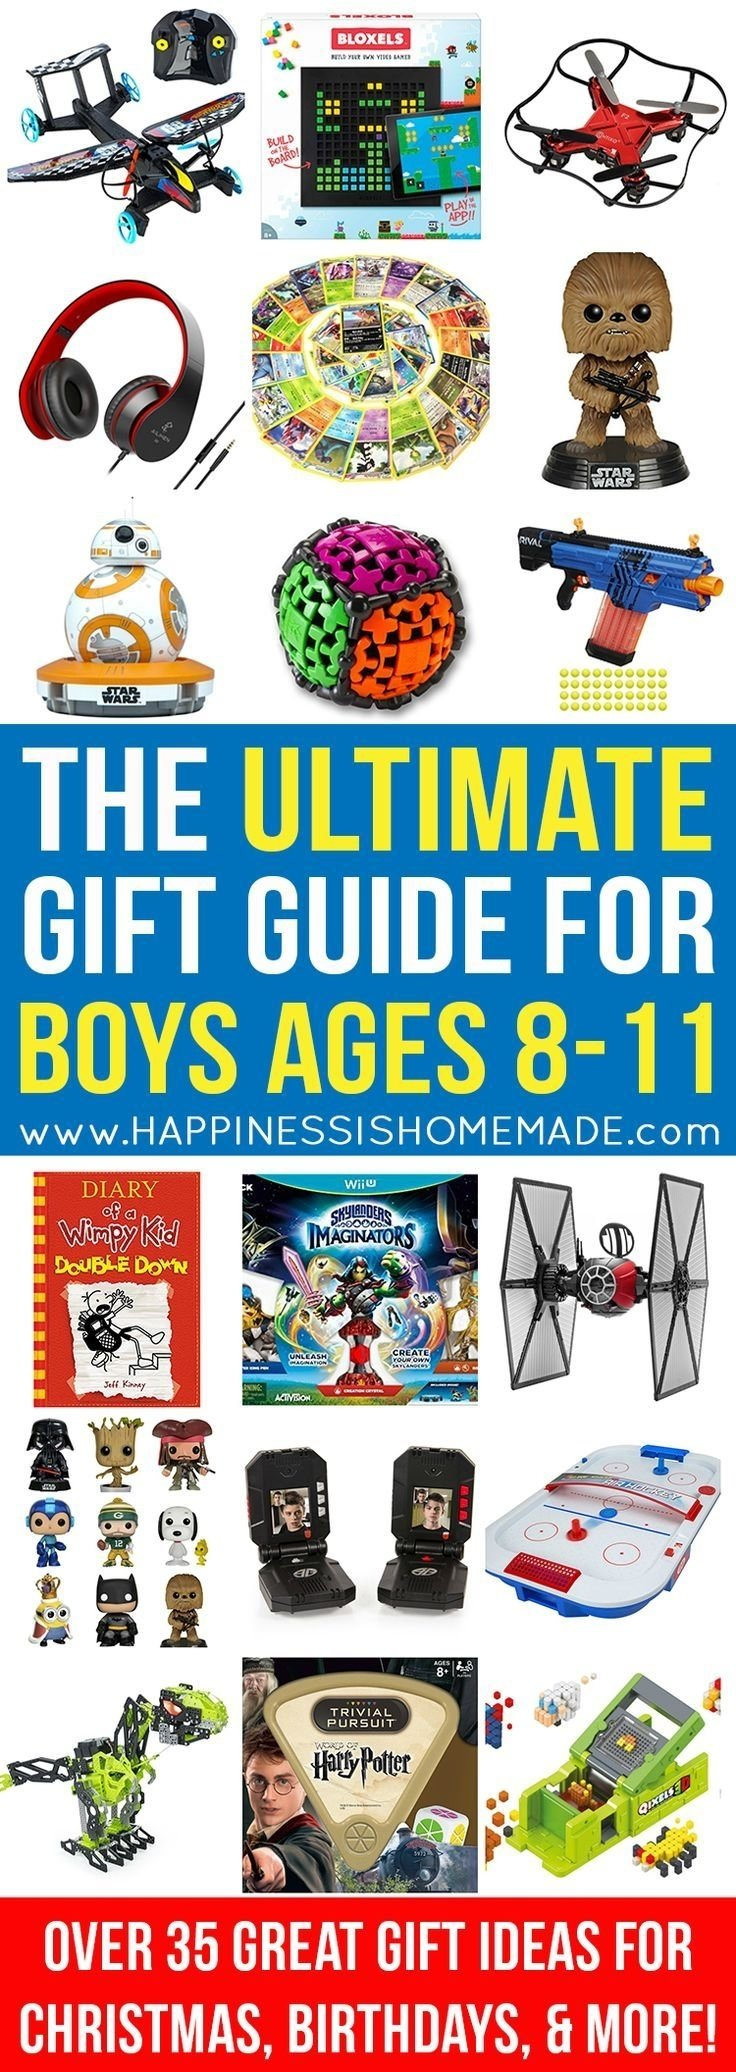 10 Lovely Birthday Ideas For 8 Year Old Boy 84 best cool toys for 11 year old boys images on pinterest baby 2020